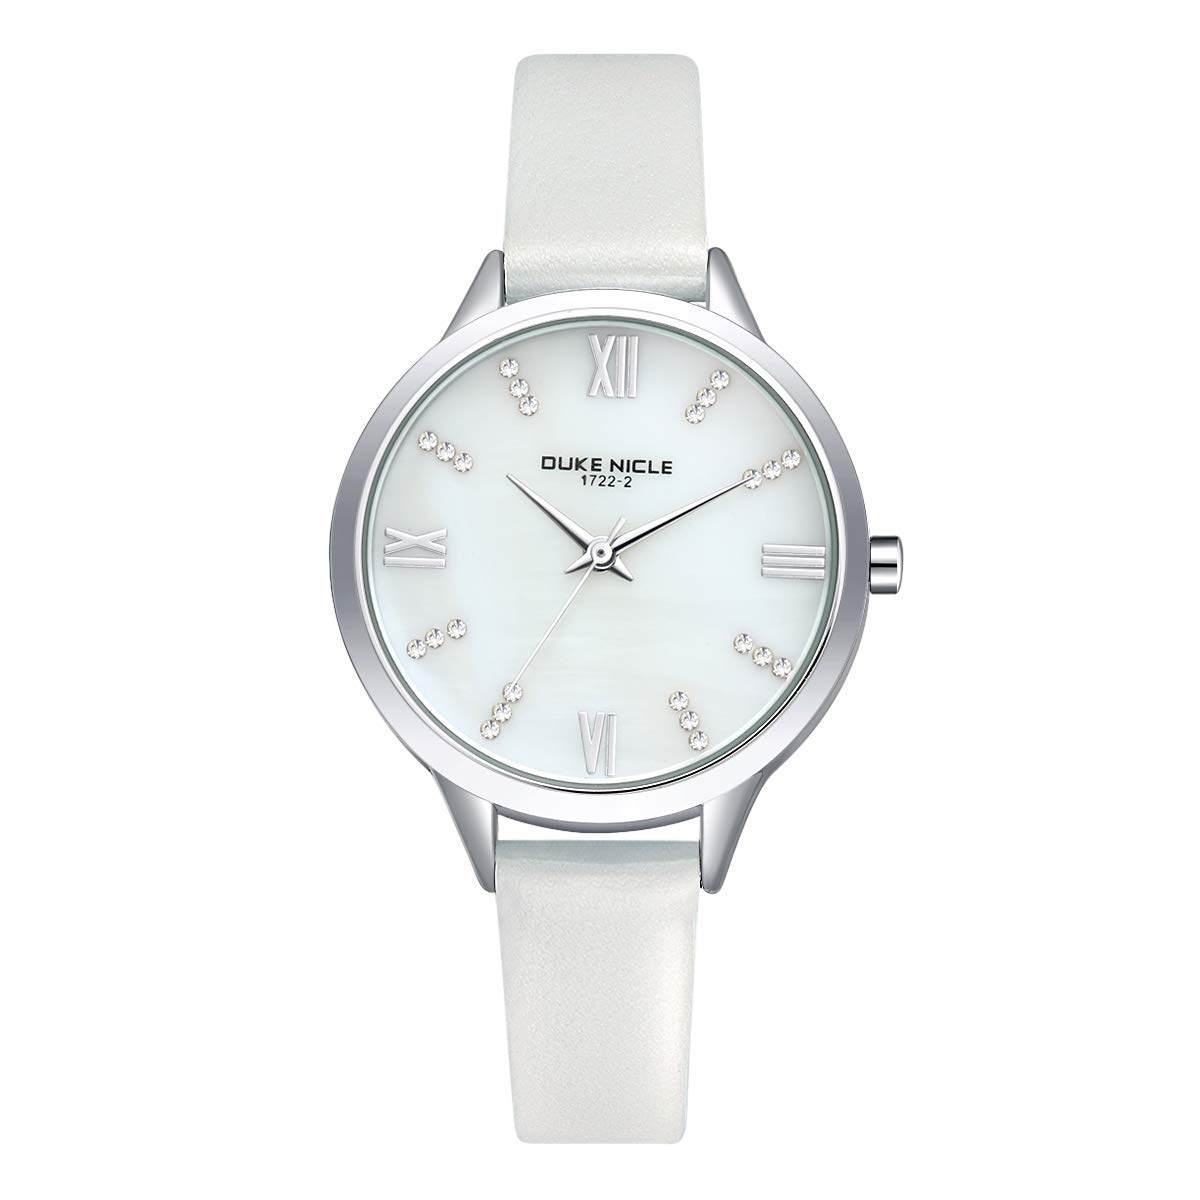 Ladies Watches, Womens Fashion Casual Waterproof Mother-of Pearl Dial Wrist Watches for Girls Genuine Leather Band Watches (White)